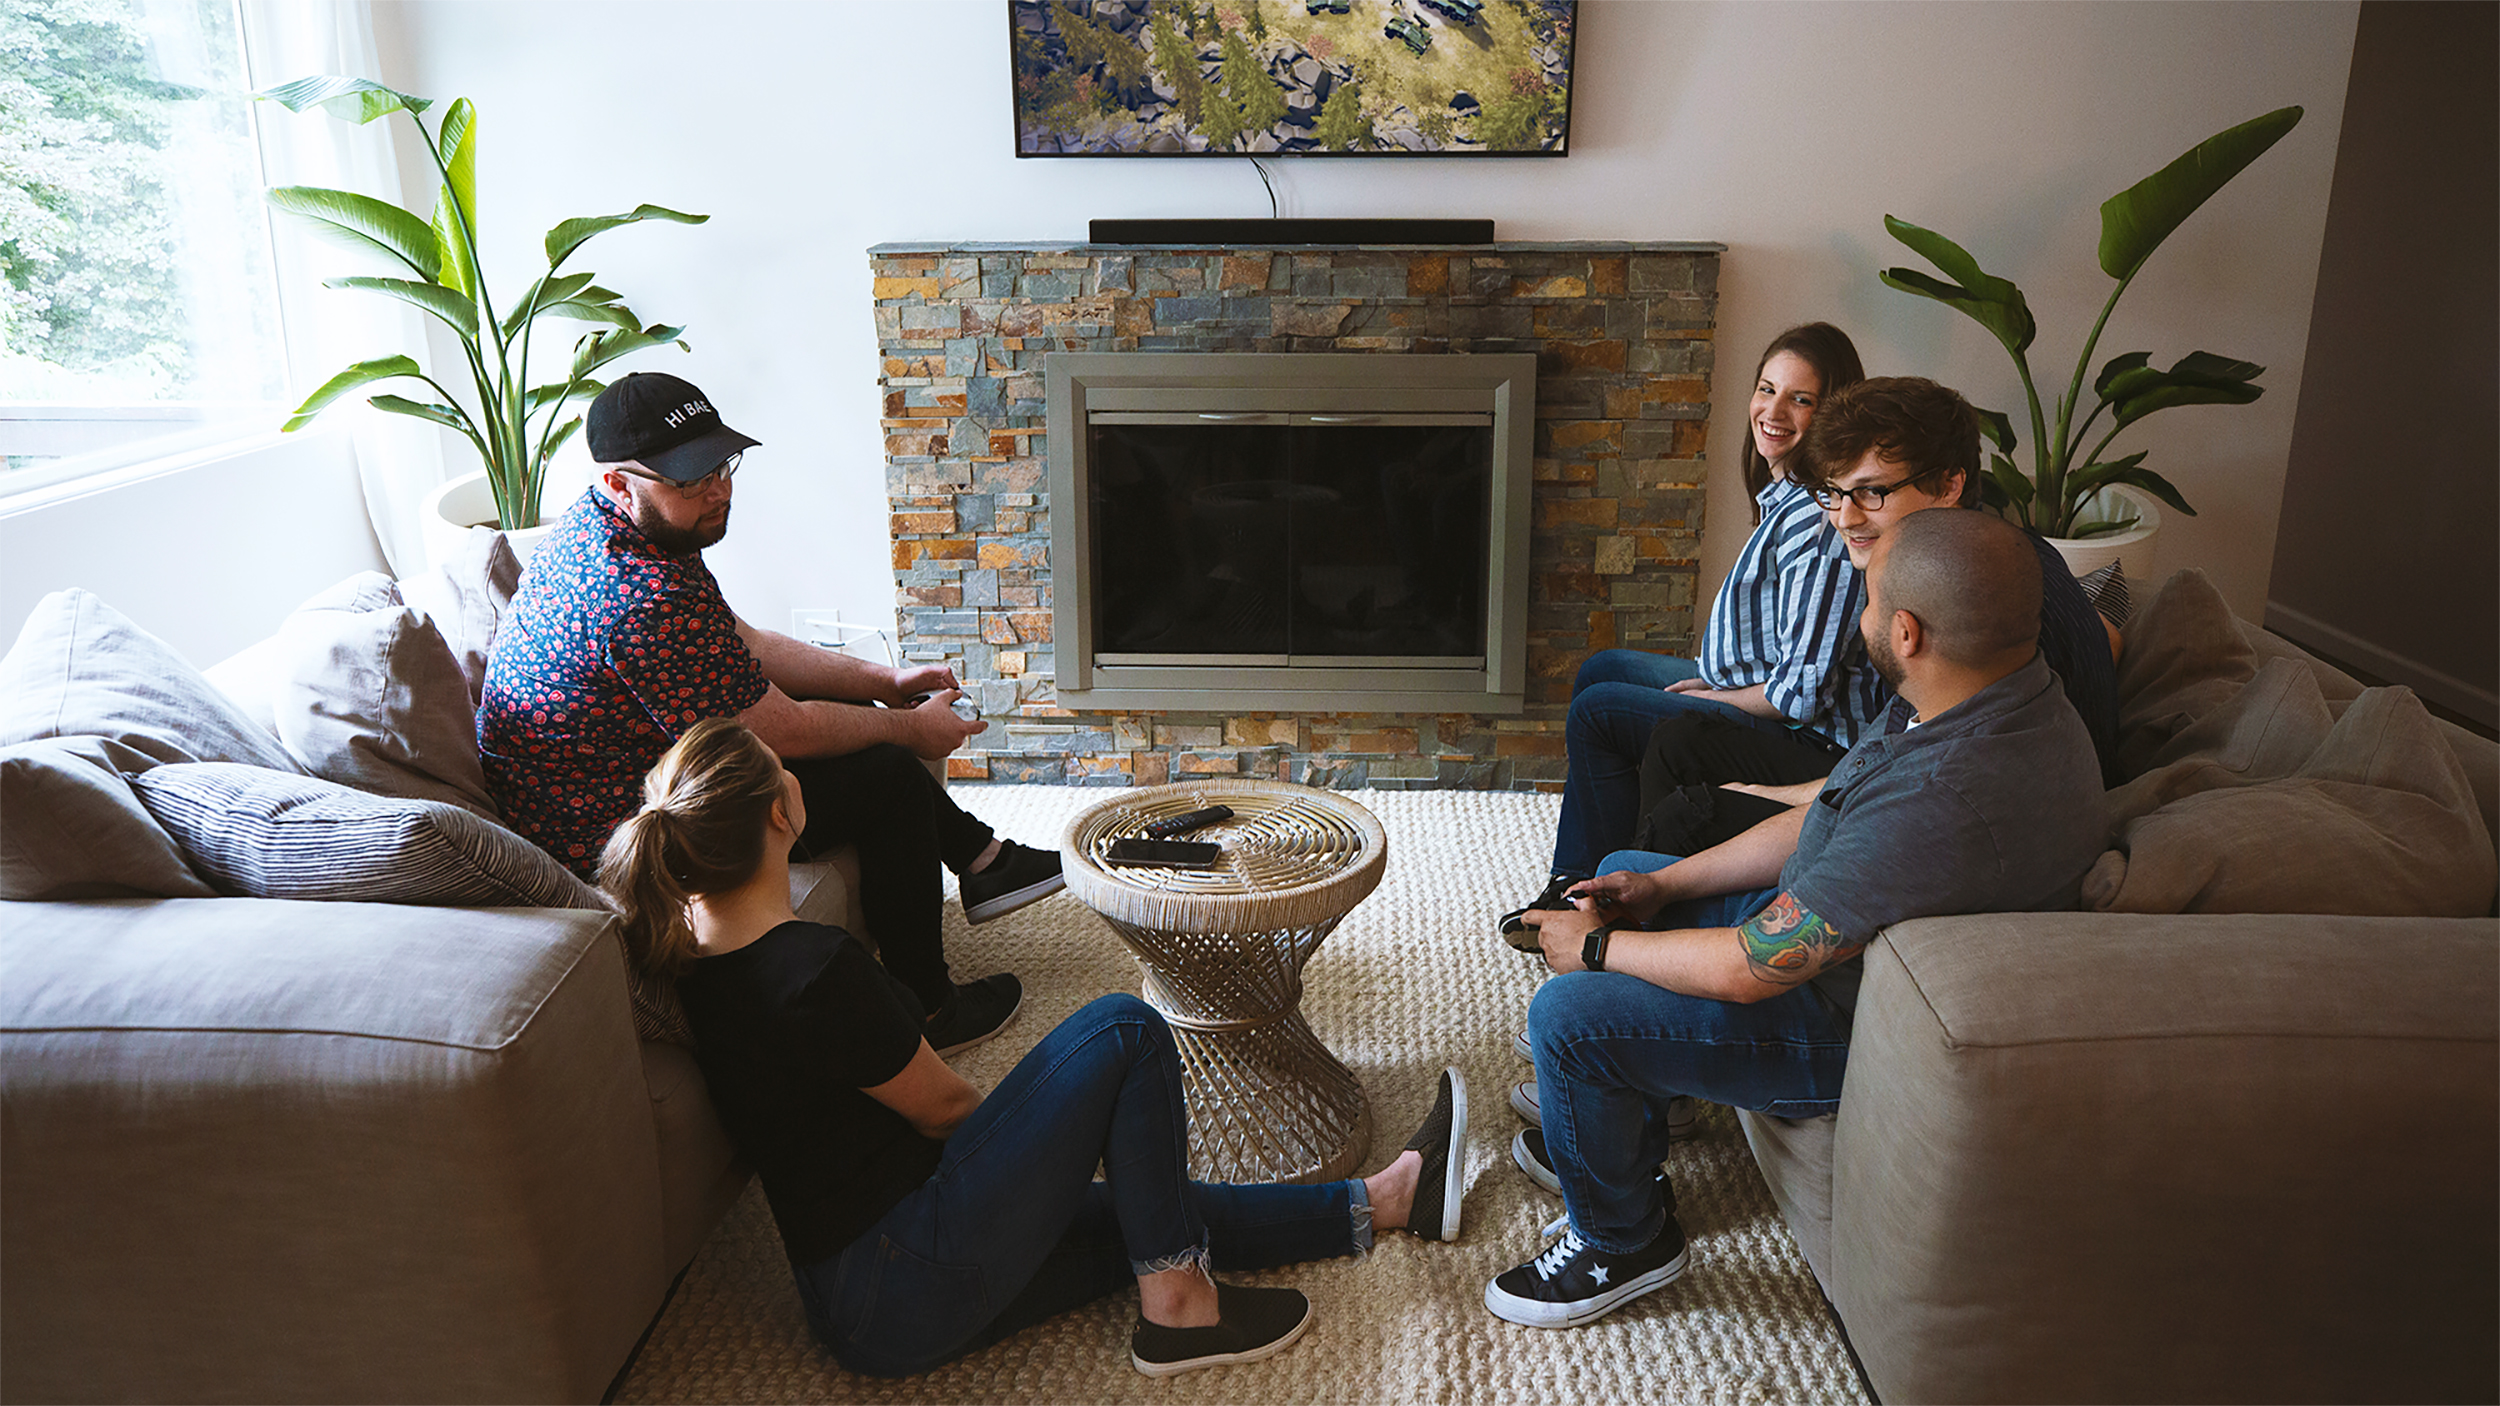 Three friends hanging out near the kitchen island. One person showing off their newest Xbox achievement on their phone to the other two people.